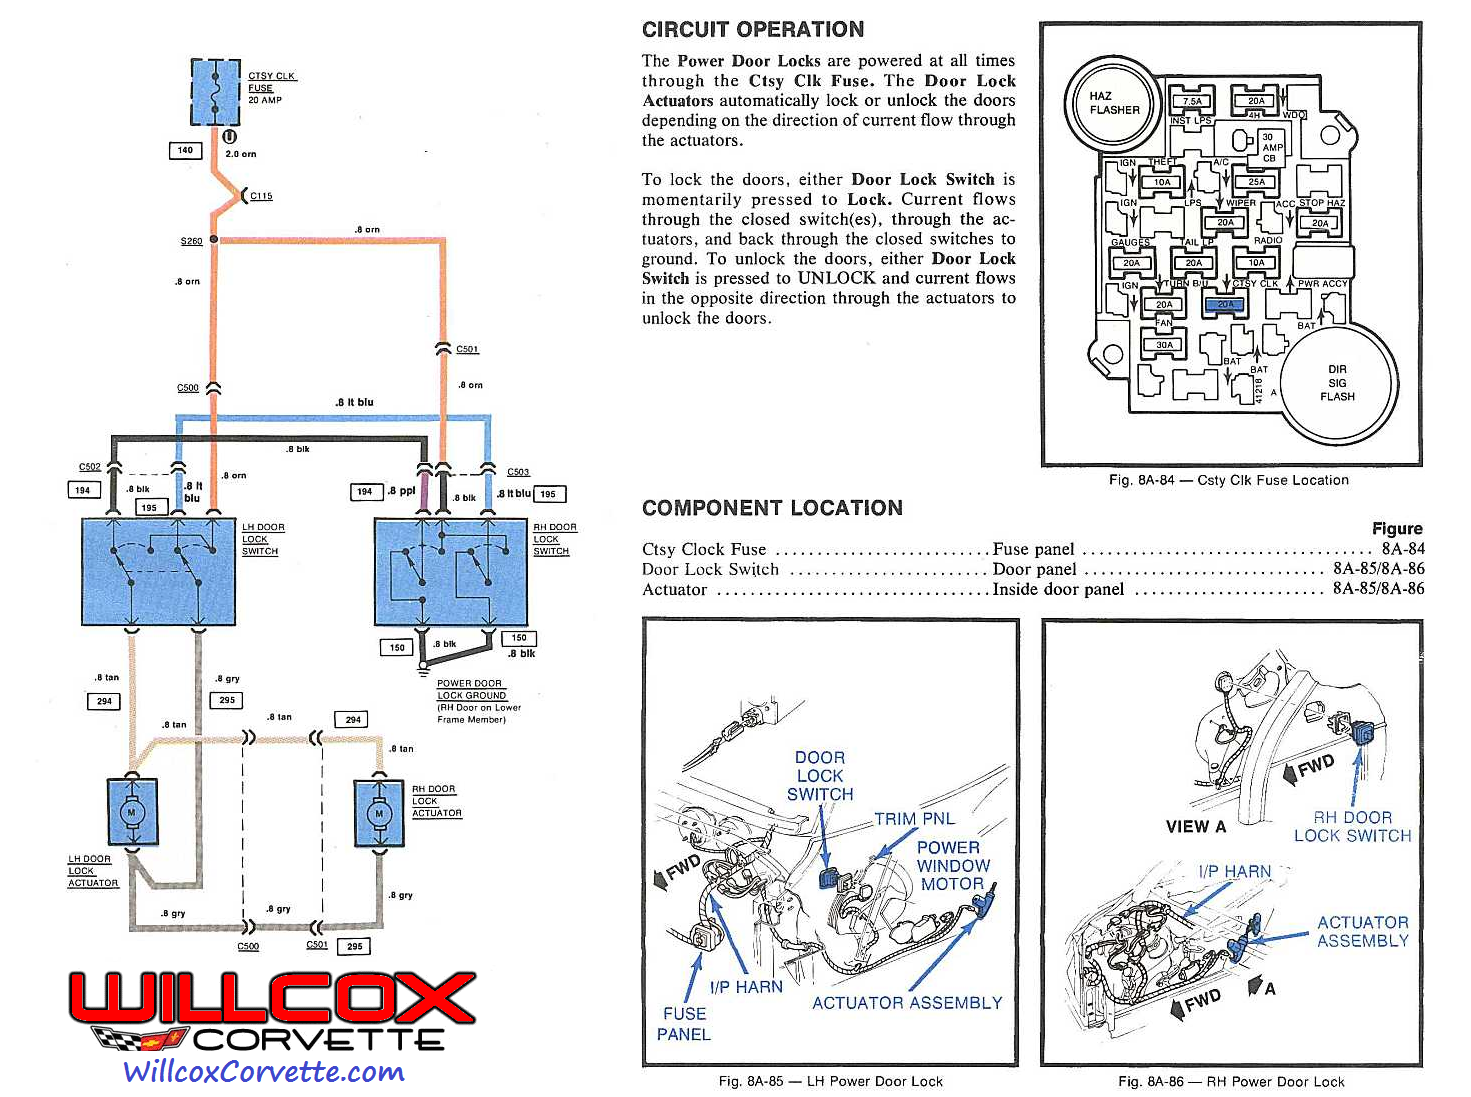 1976 Chevy Corvette Wiring Diagram Circuit And Hub 1974 Fuse Box Power Door Lock 79 42 1979 Schematic